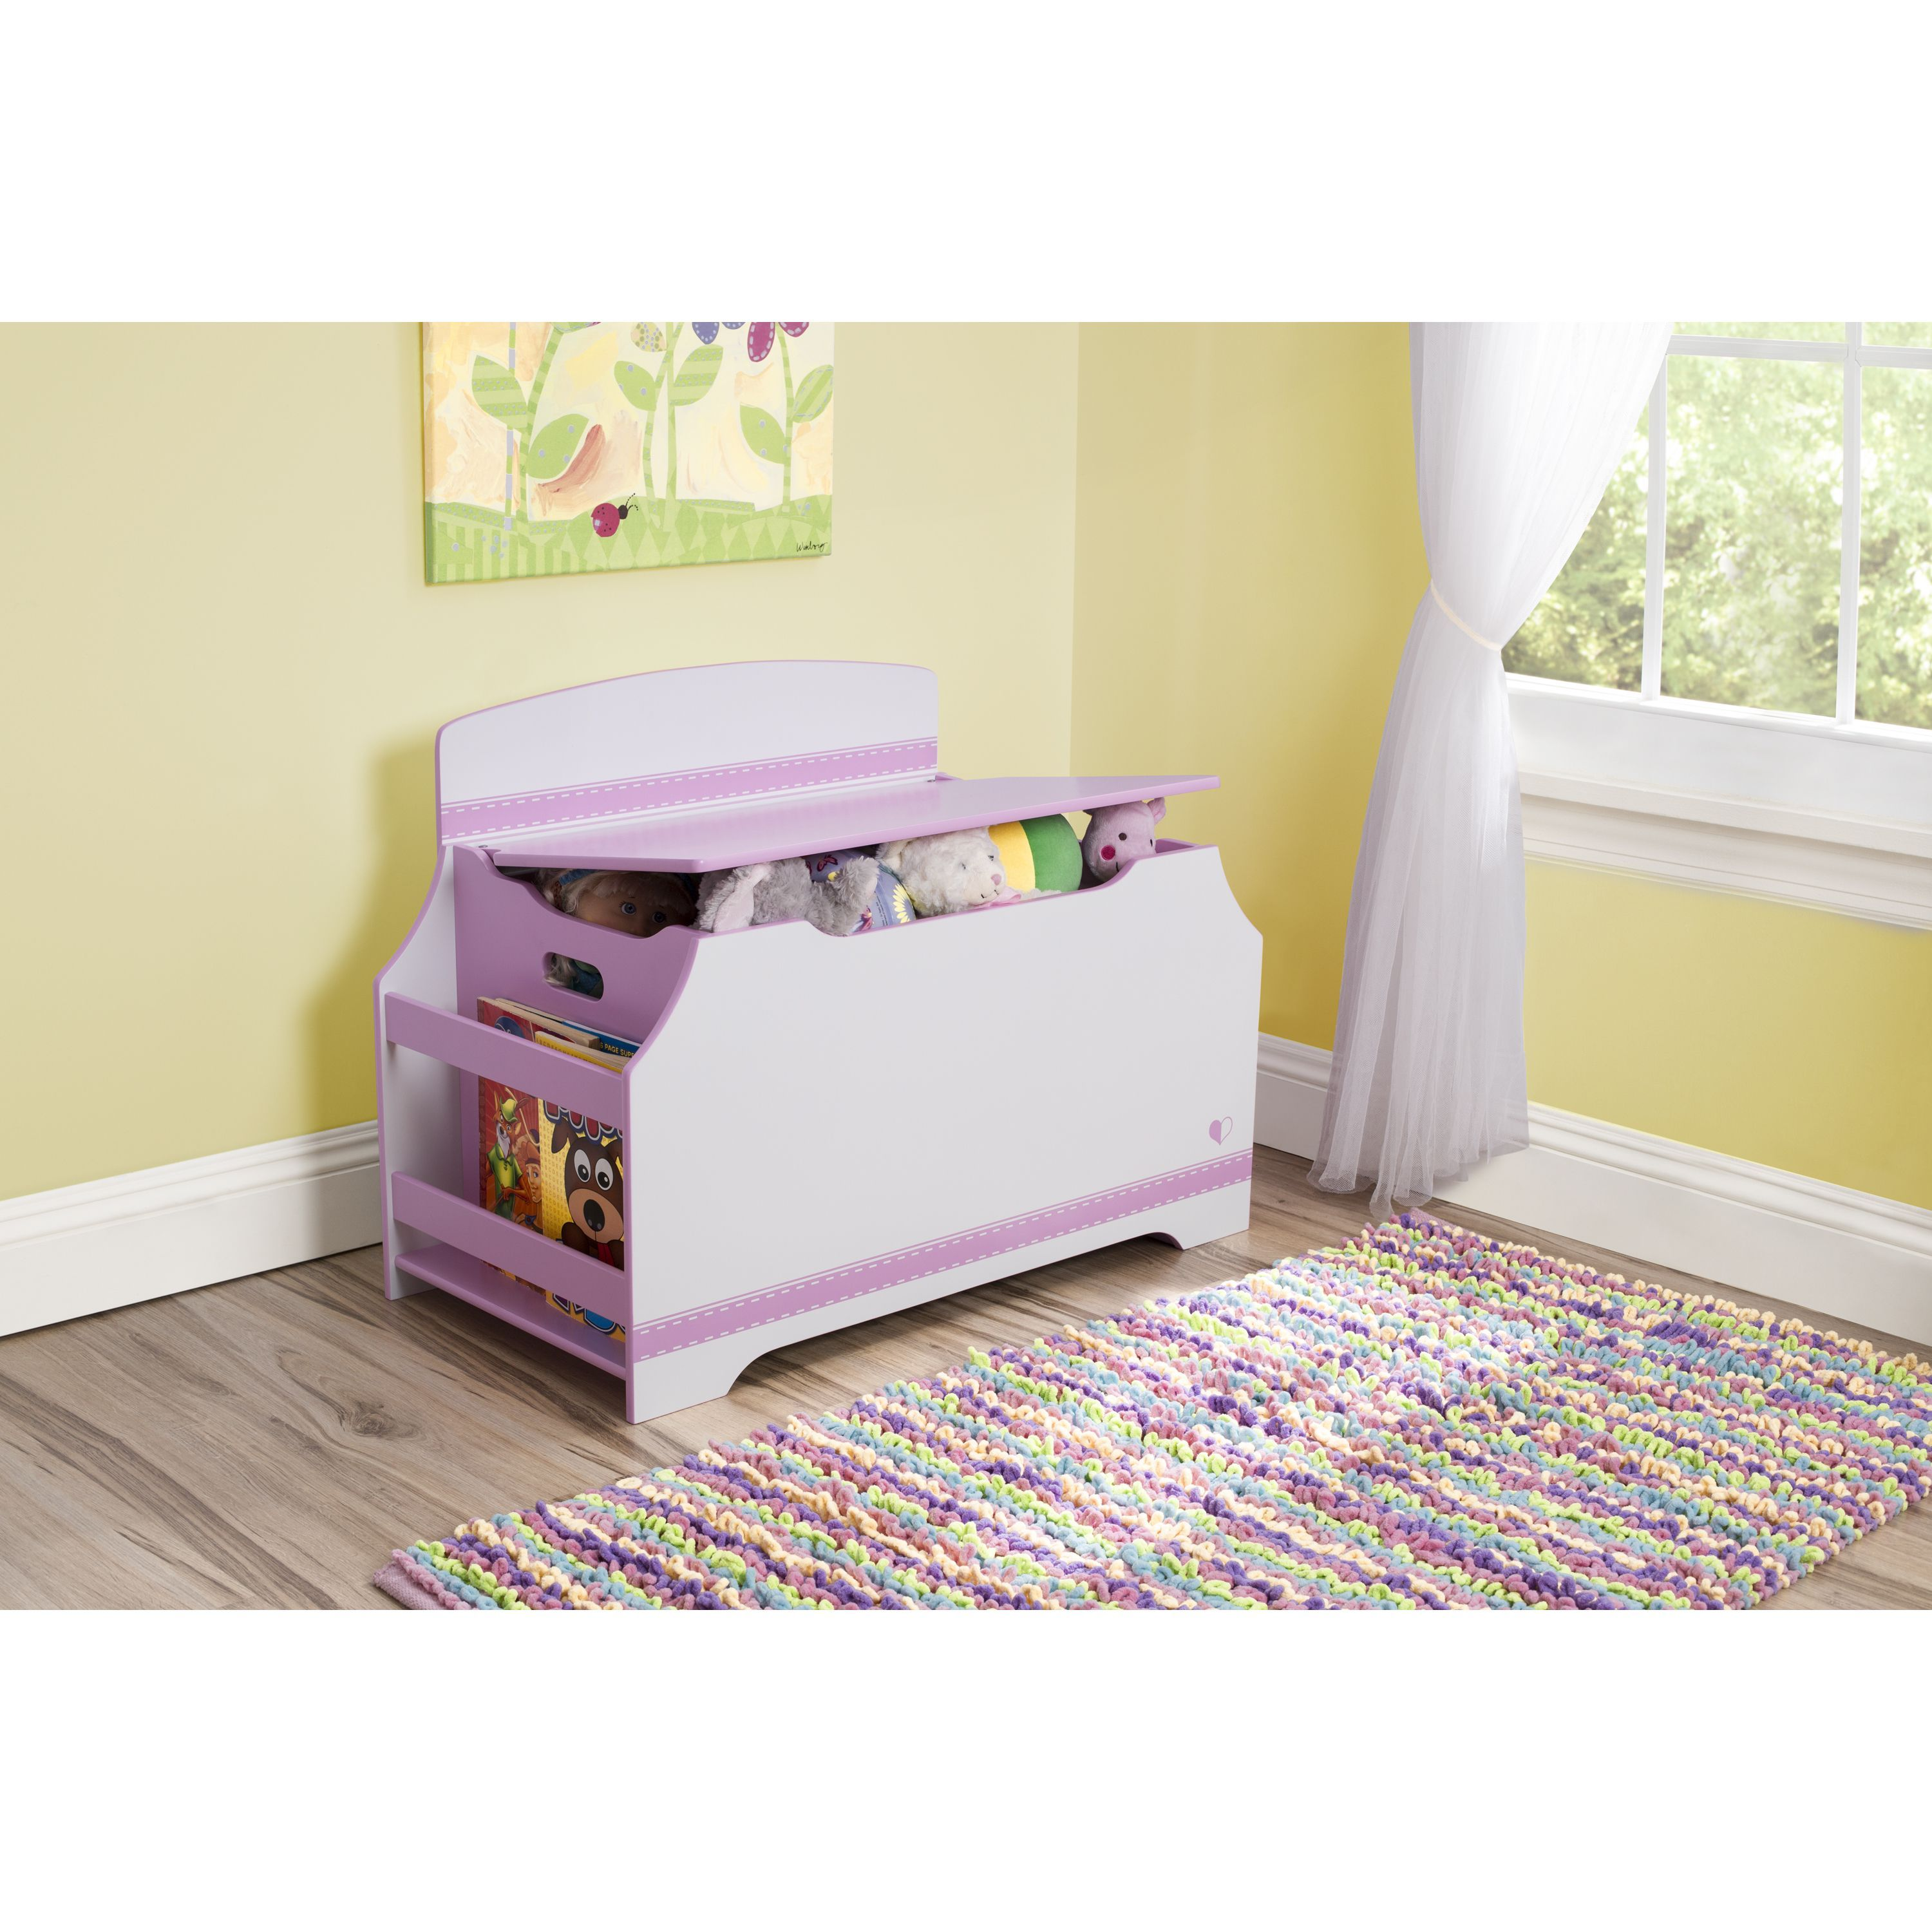 Overstock Com Online Shopping Bedding Furniture Electronics Jewelry Clothing More Book Racks Toy Boxes Toddler Furniture